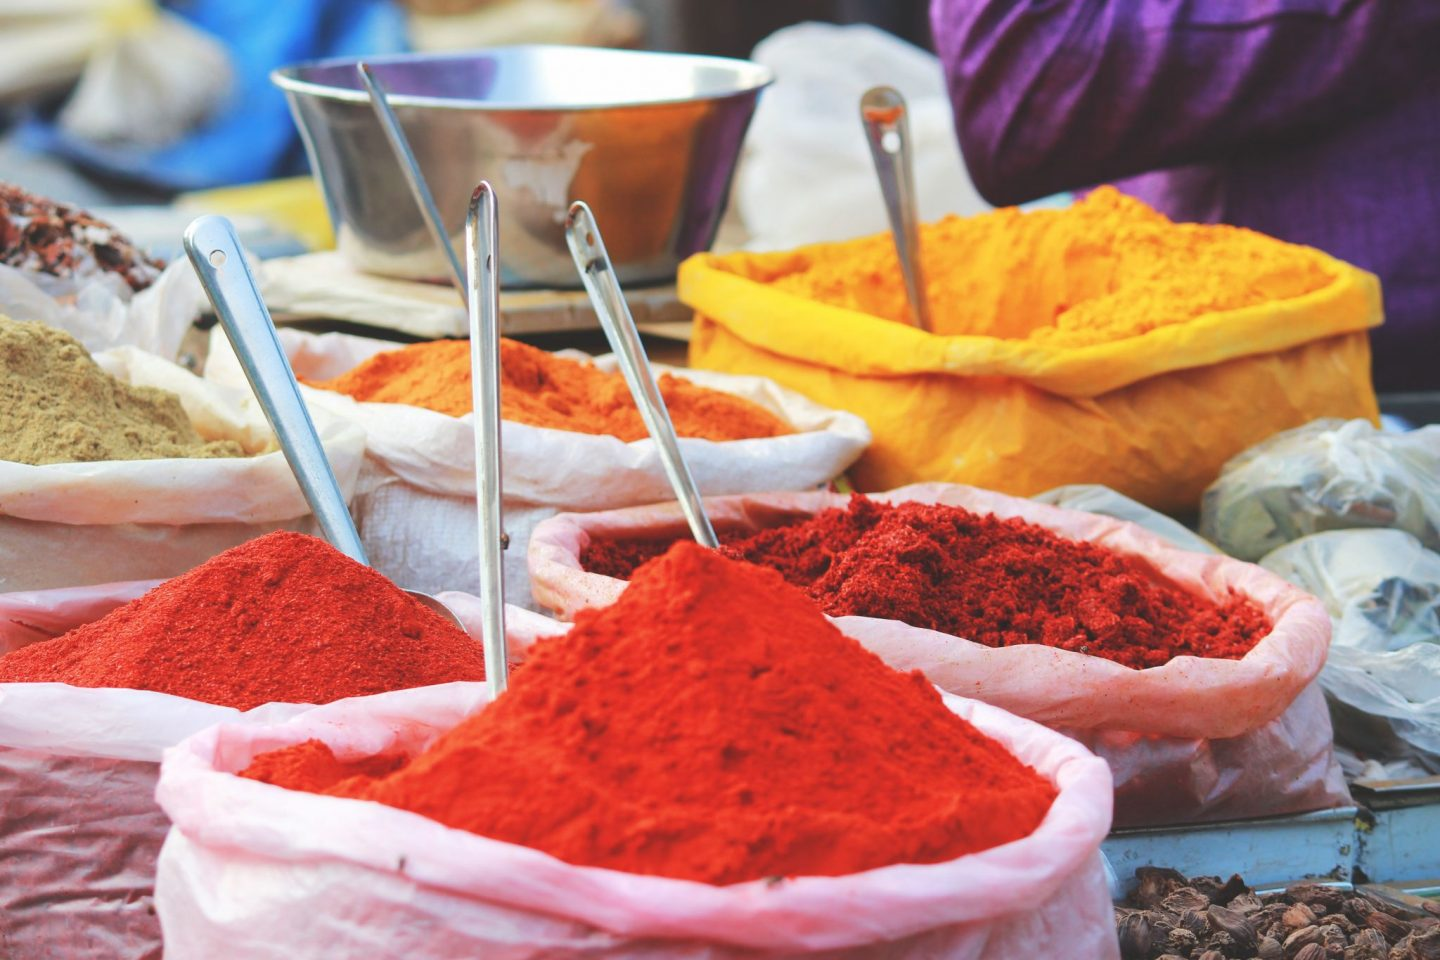 India road trip - Spice market